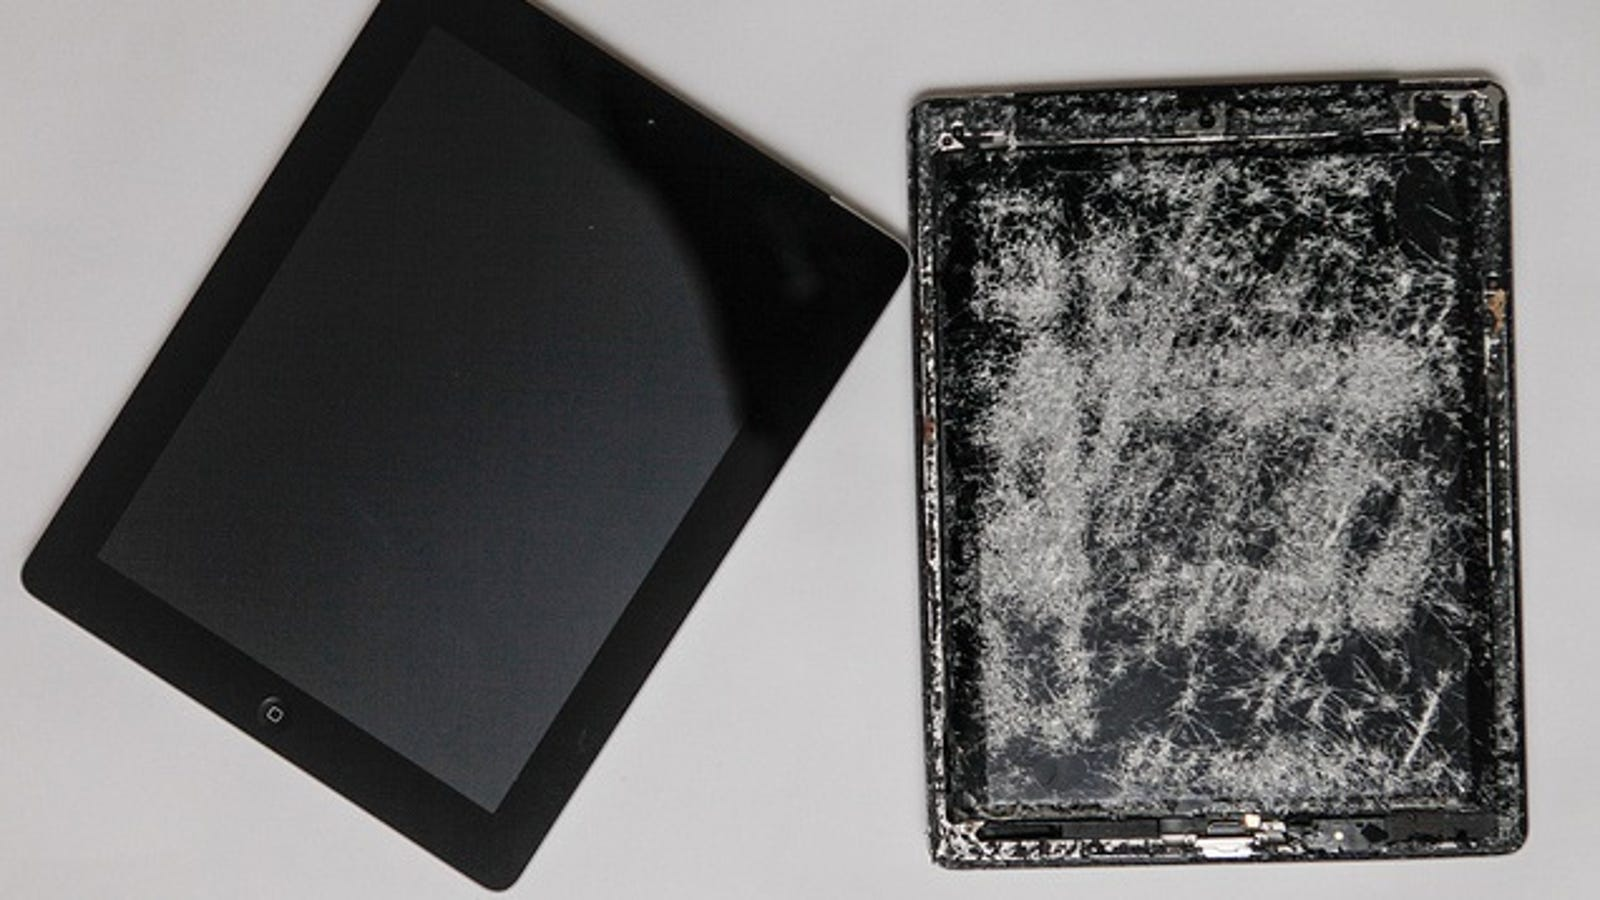 Replace the Glass on Your Broken iPad at Home